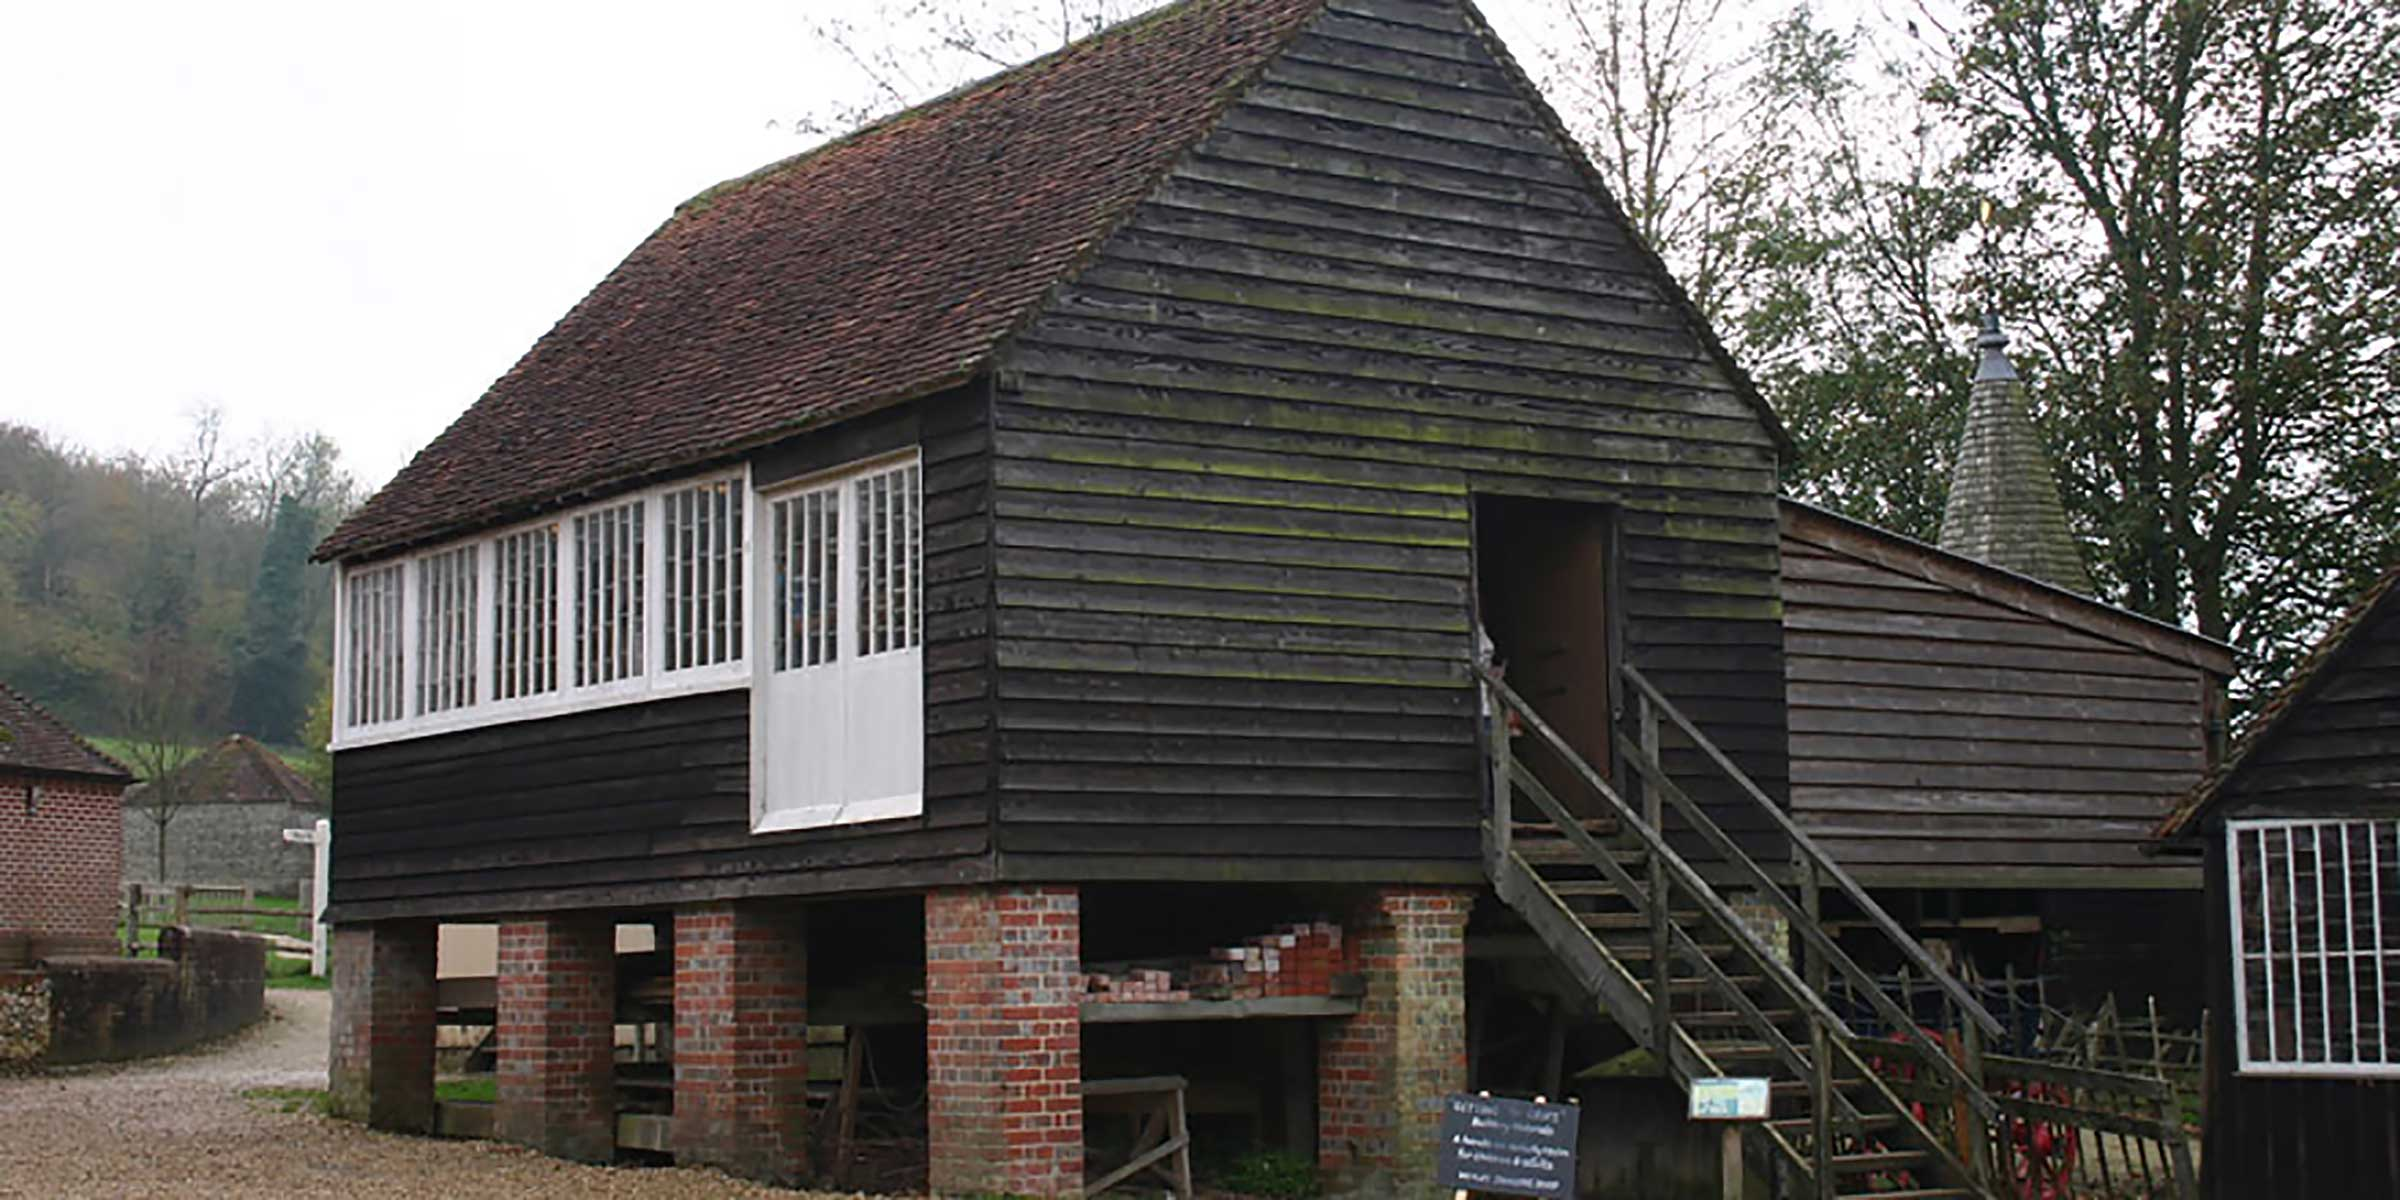 Joiners' shop from Witley